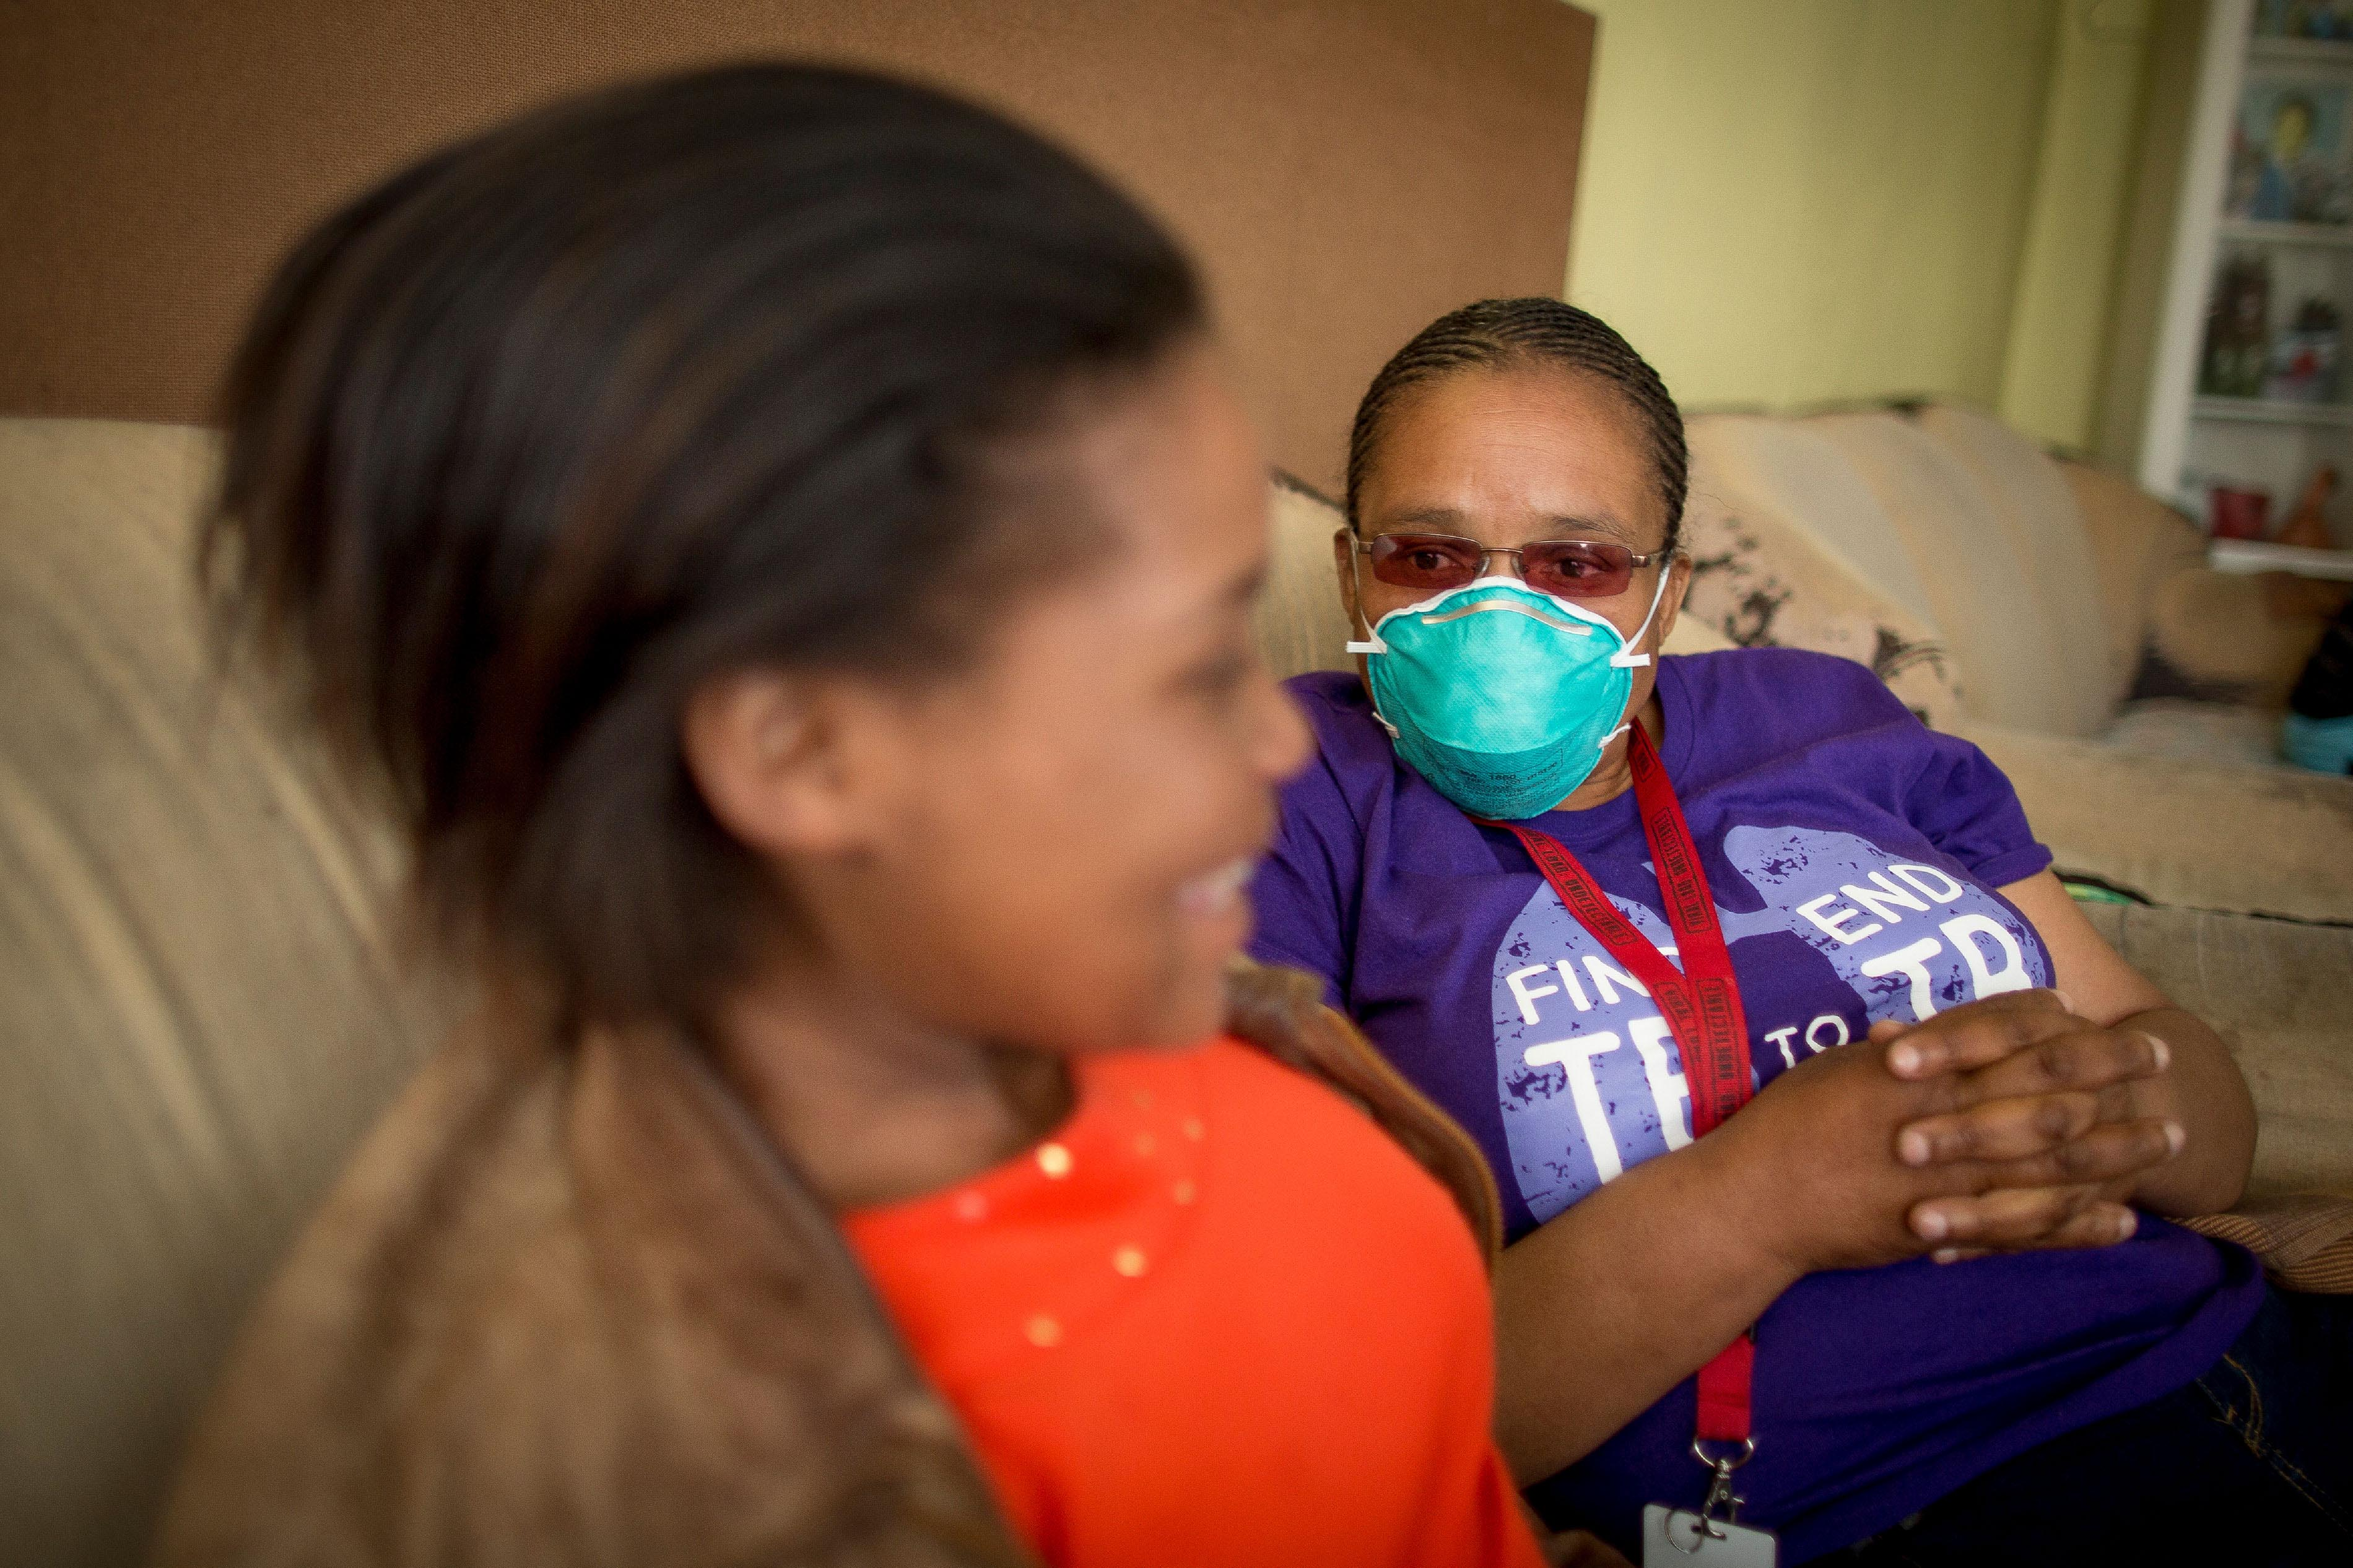 Sinethemba, 16 years,her MSF counsellor, Xoliswa, at her home in Khayelitsha, Western Cape, South Africa, where she lives with her grandmother, Vuyisiwa Madubela, and four other familtb_southafrica_sinethembawithcounselor_msf177617_sydellwillowsmith.jpg